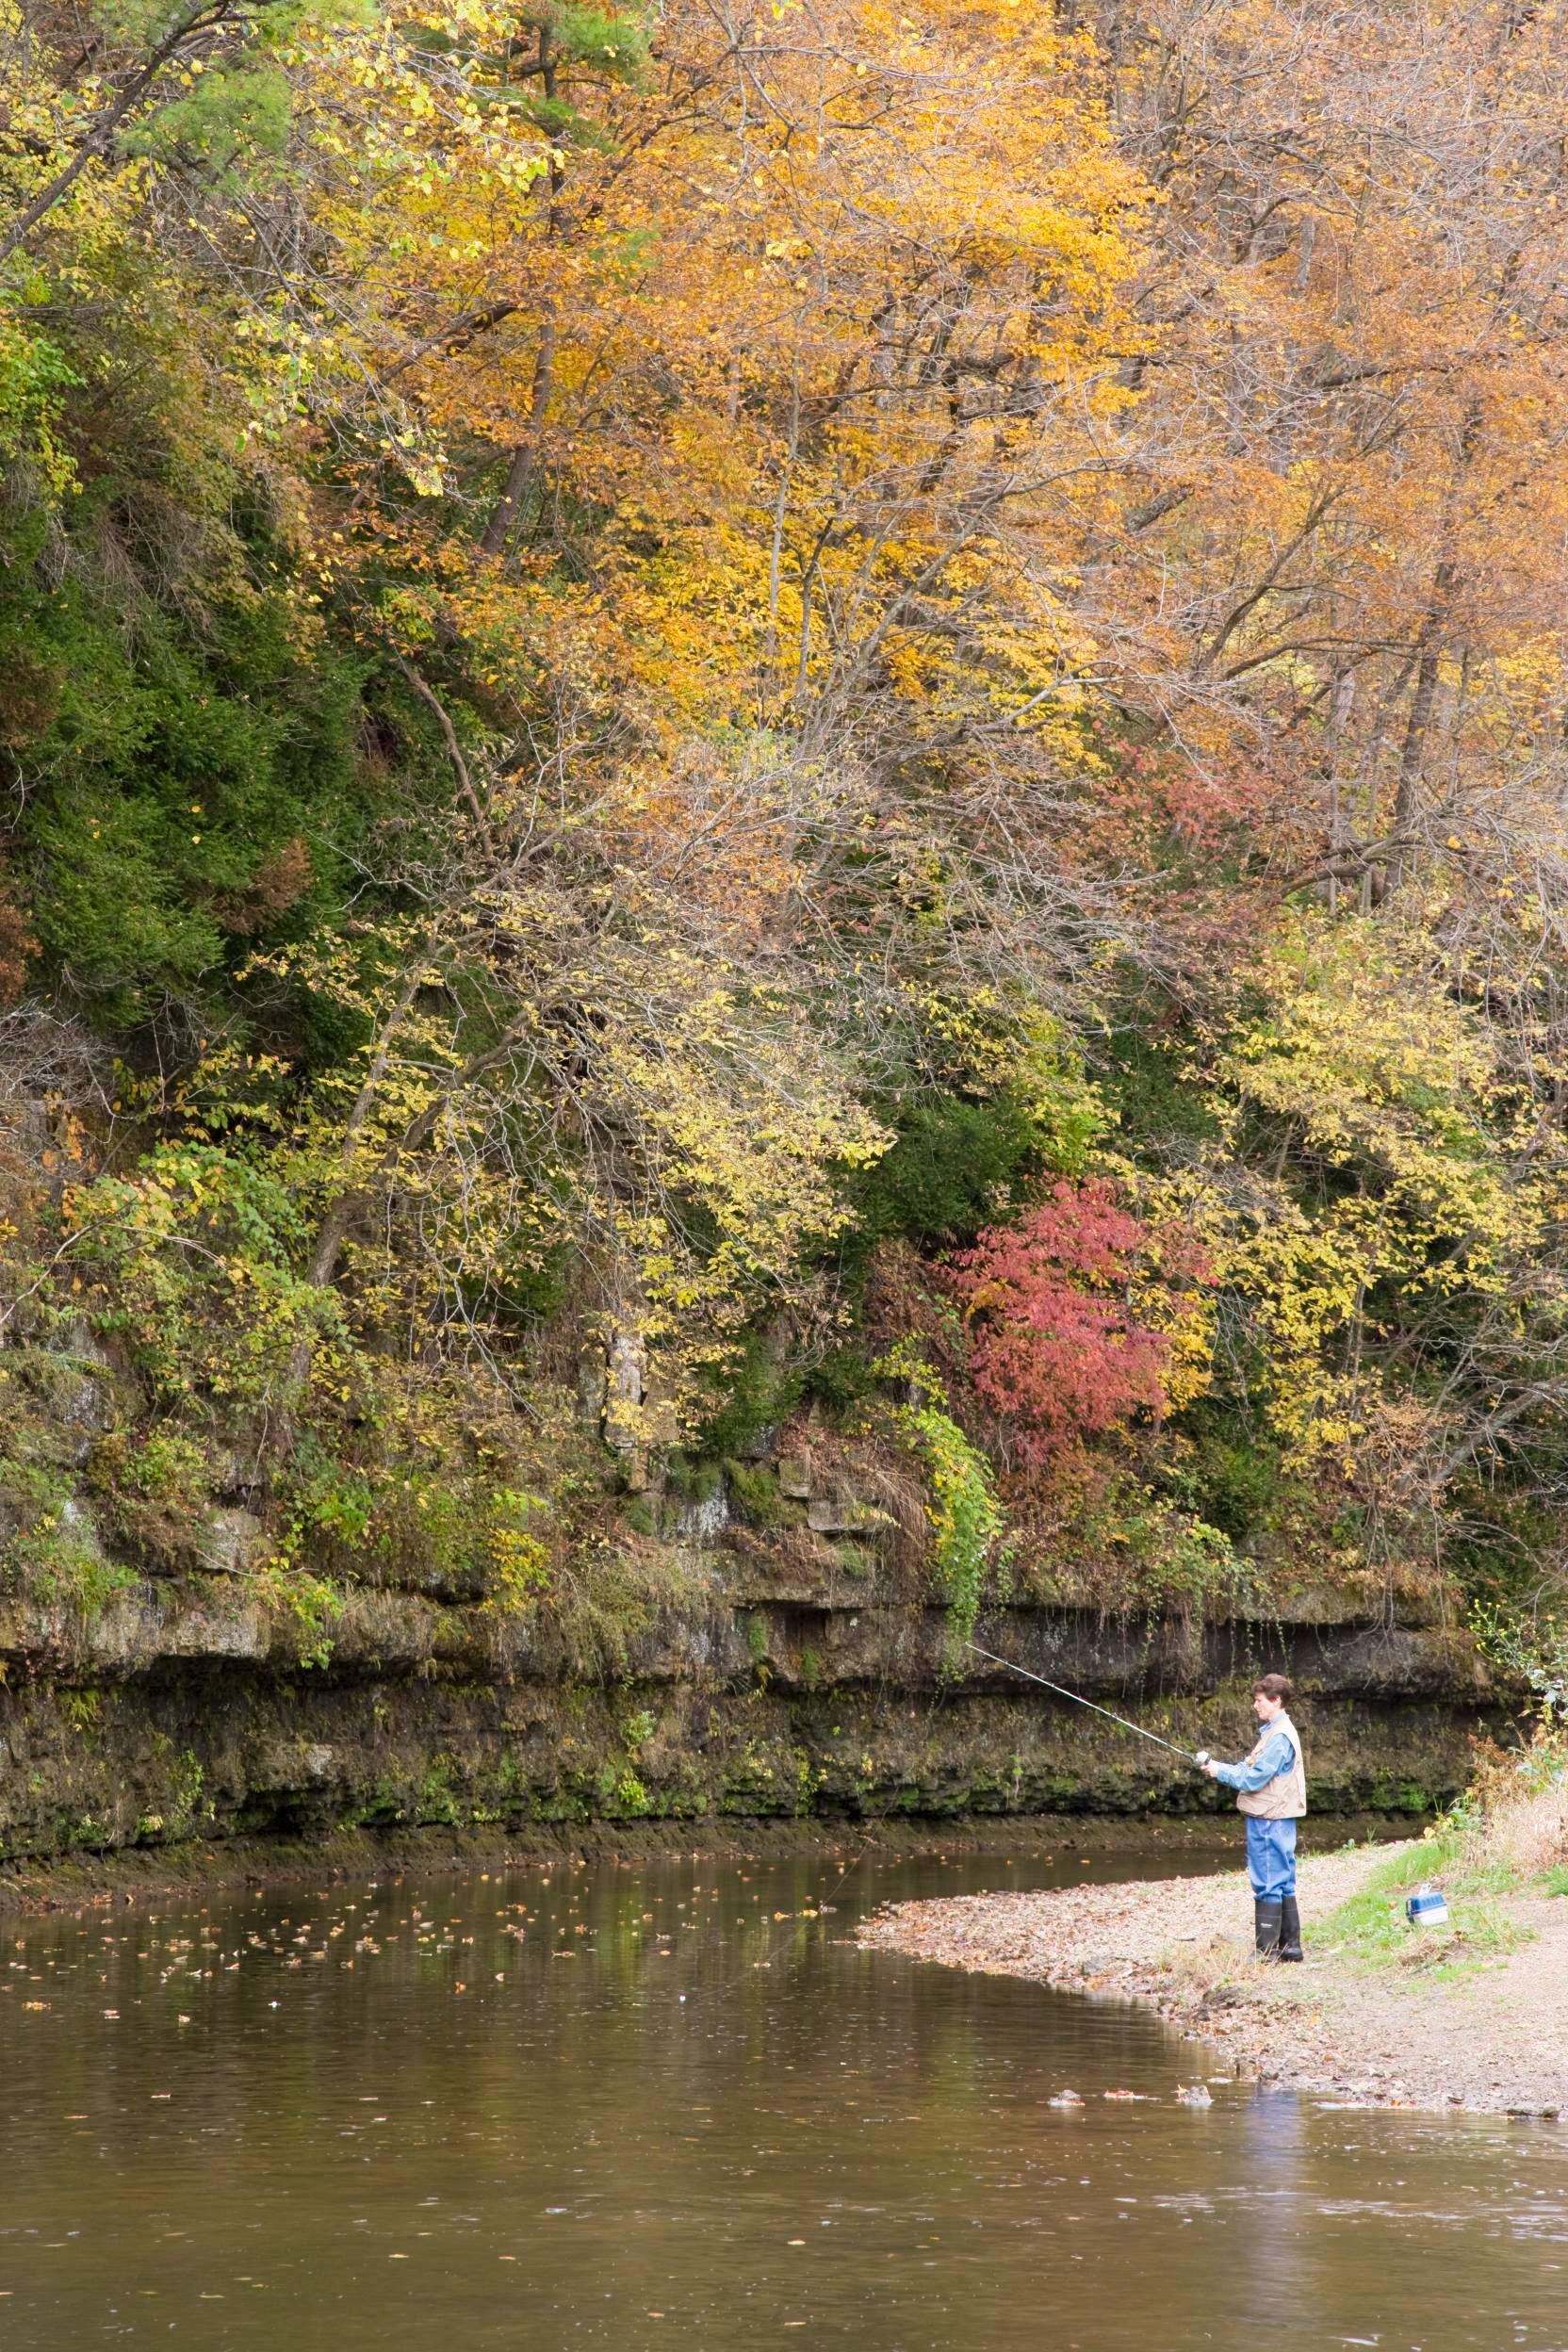 Apple River Canyon State Park, Illinois: 146 miles west of Chicago